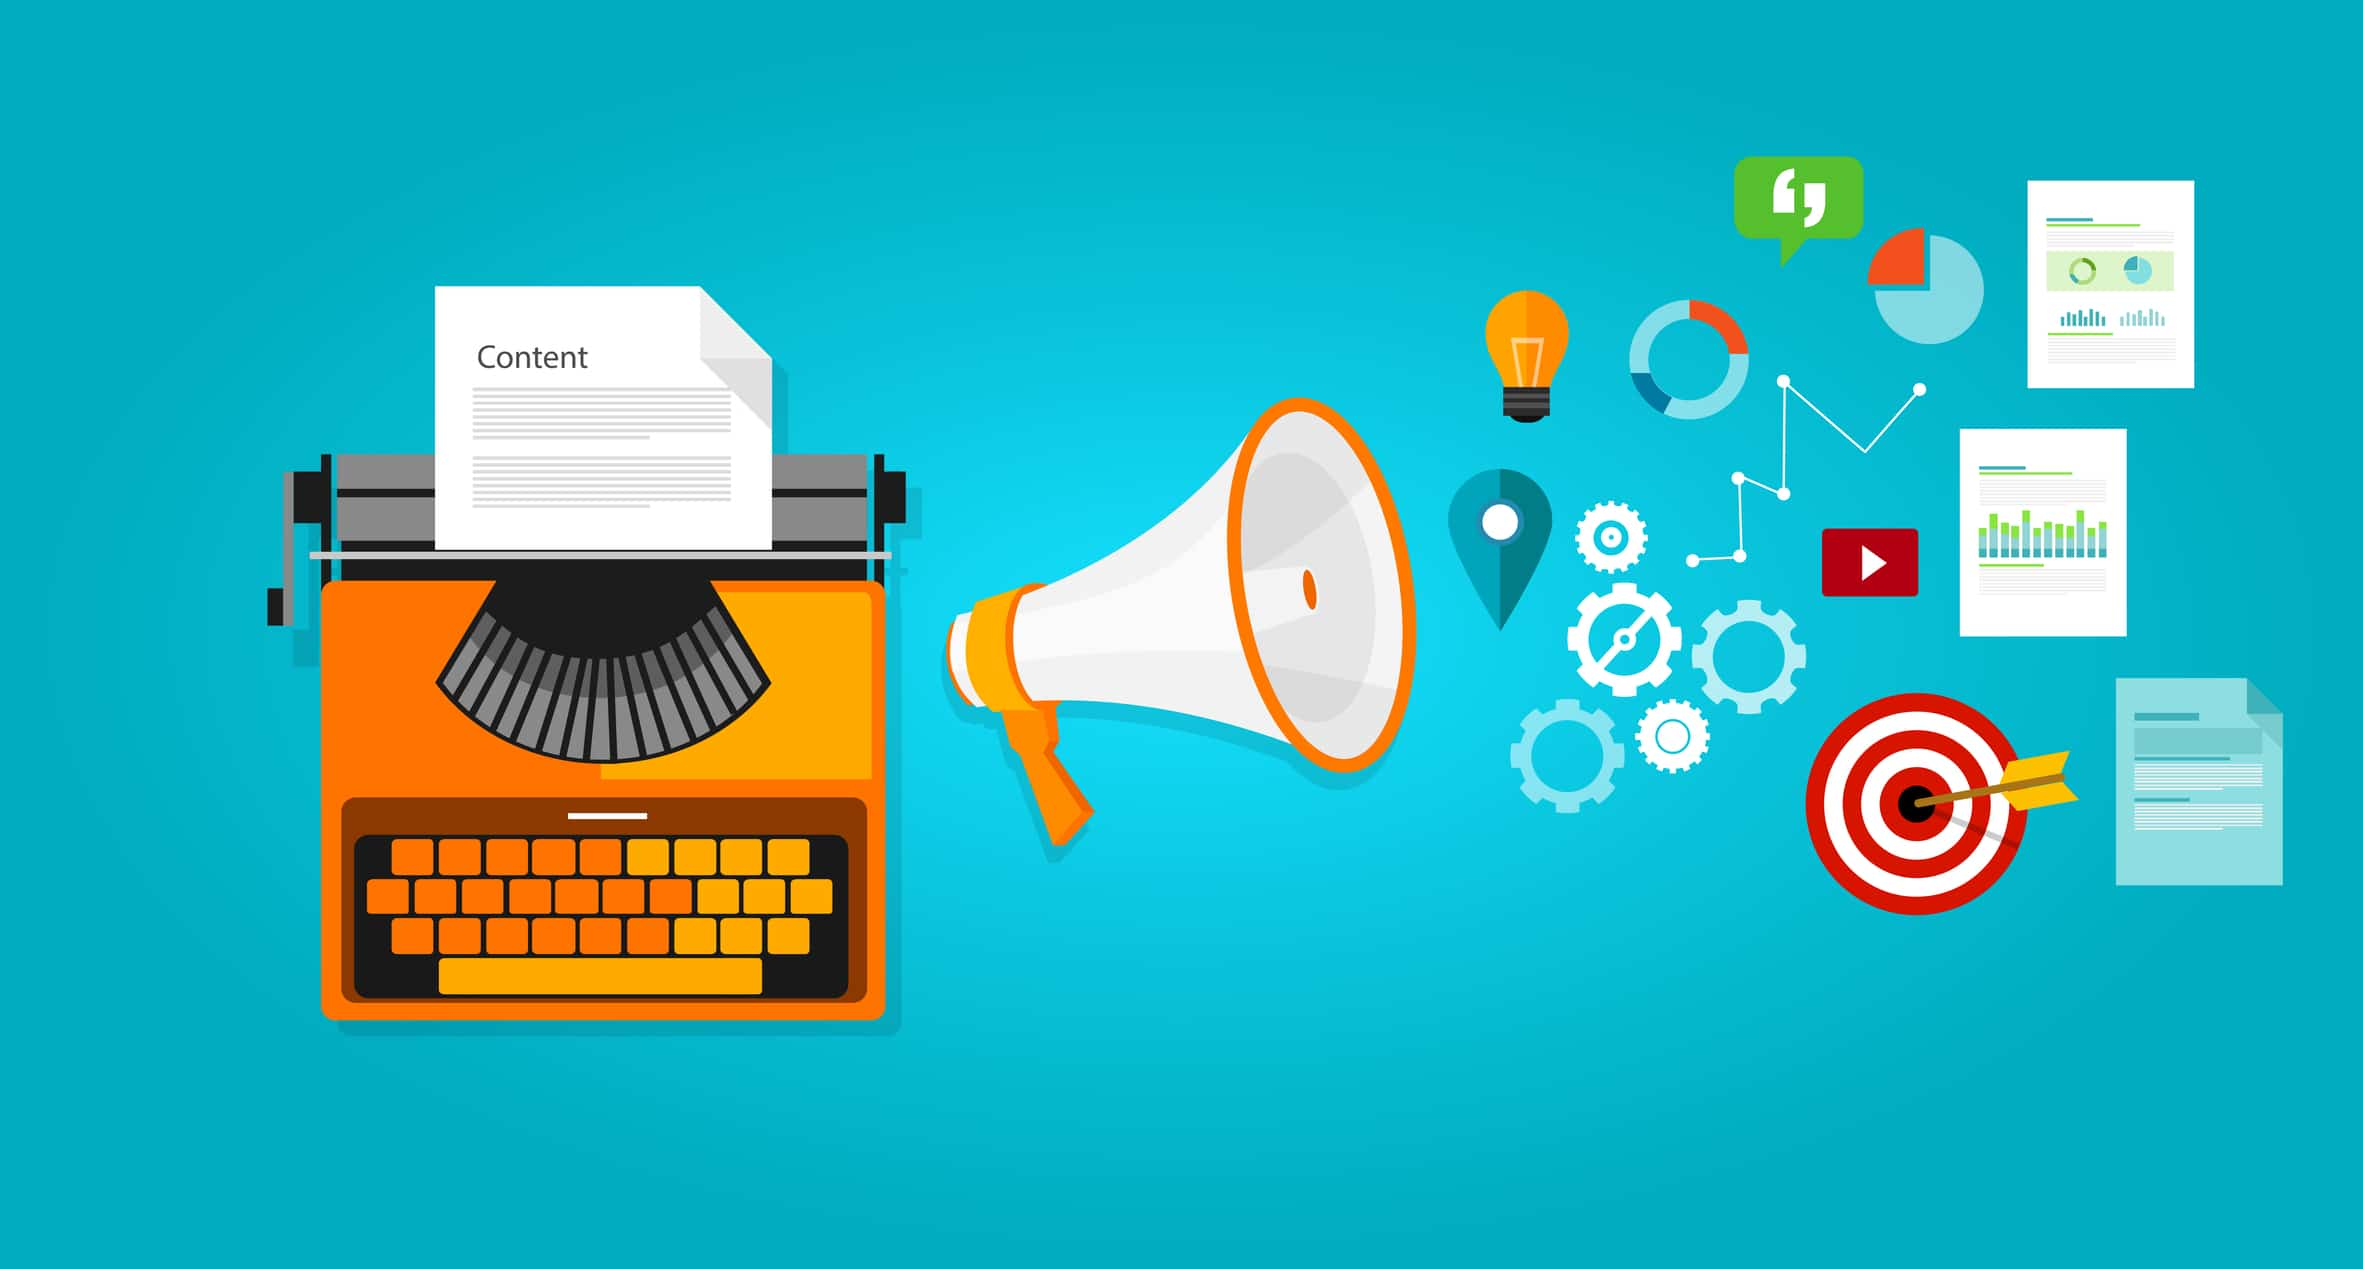 Content Marketing is a highly effective marketing strategy